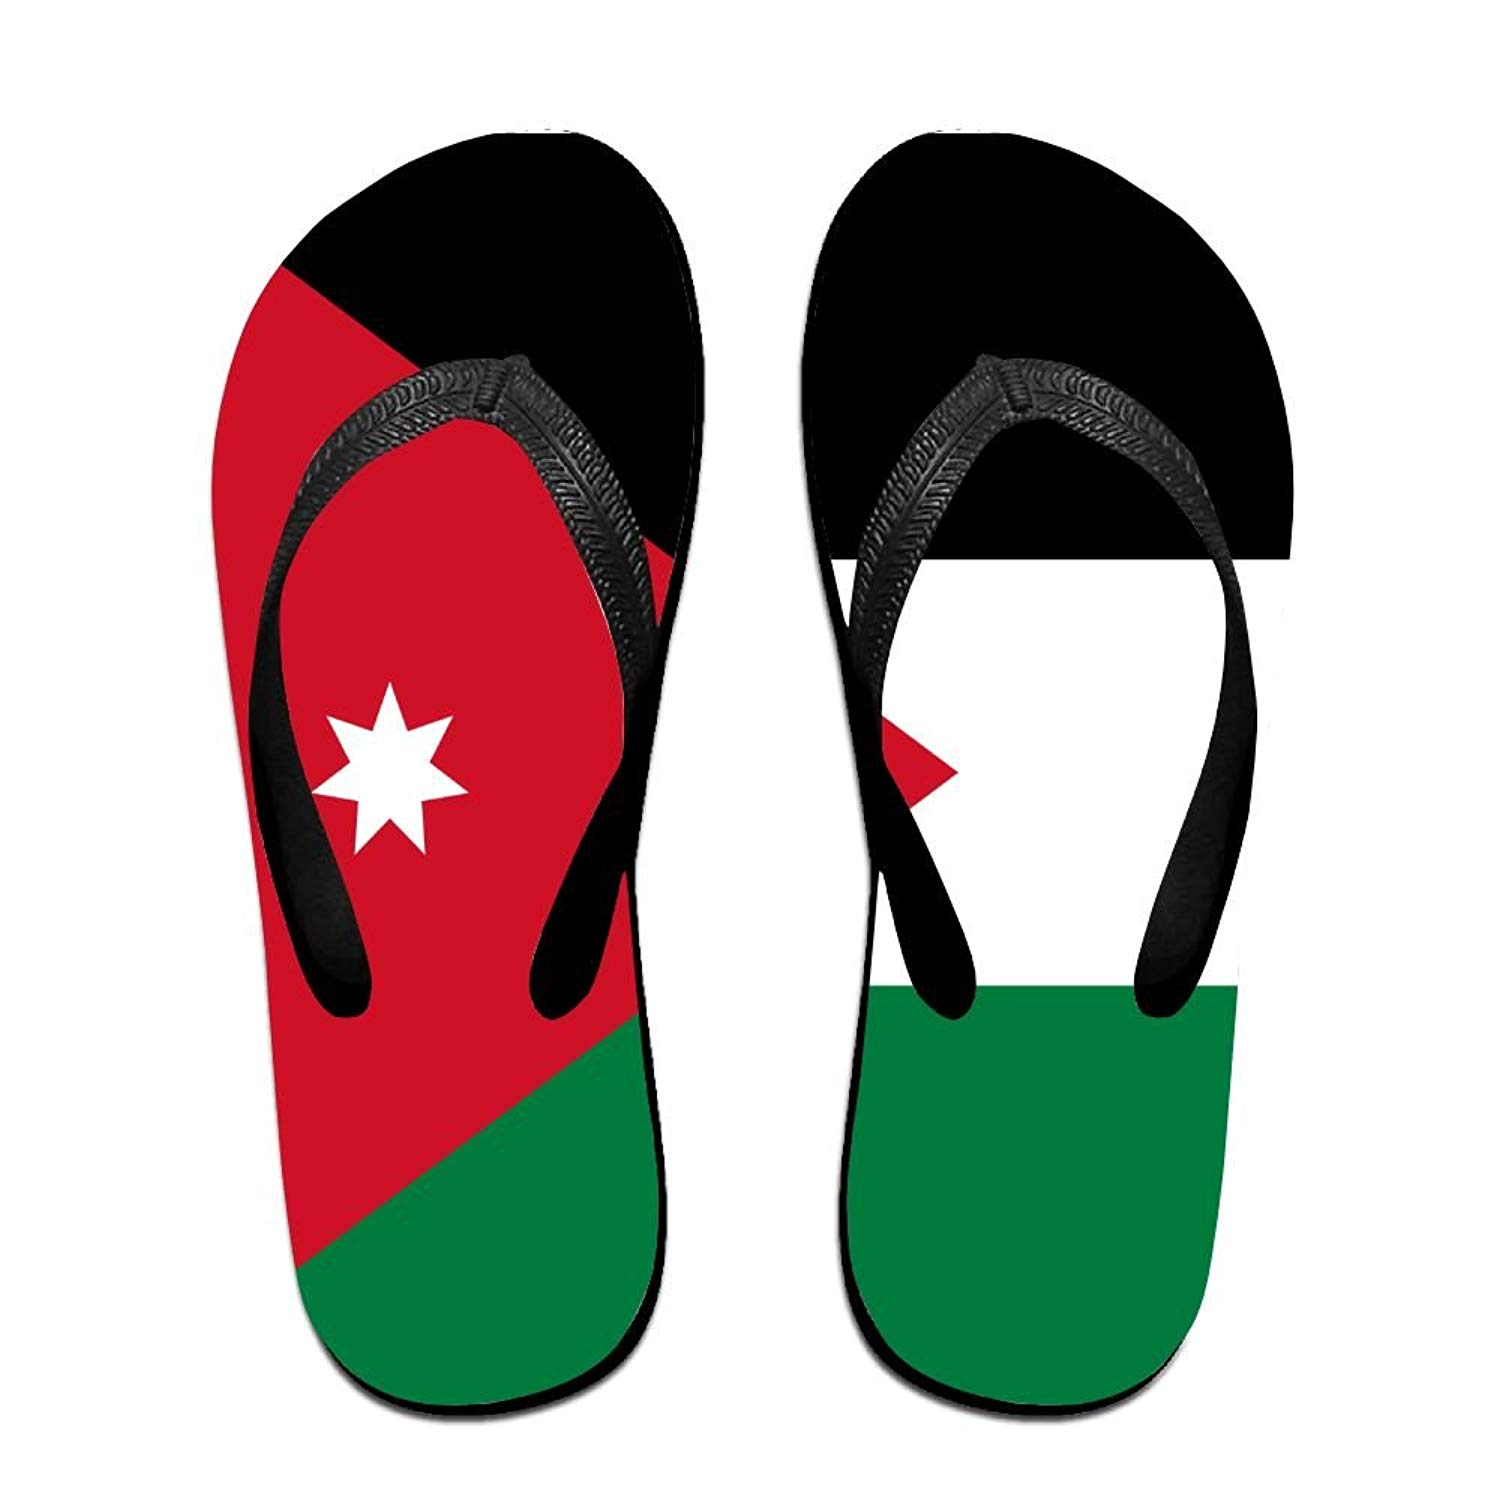 d34561bc8ed2 Get Quotations · Flag Of Jordan Comfortable Flip Flops For Children Adults  Men And Women Beach Sandals Pool Party